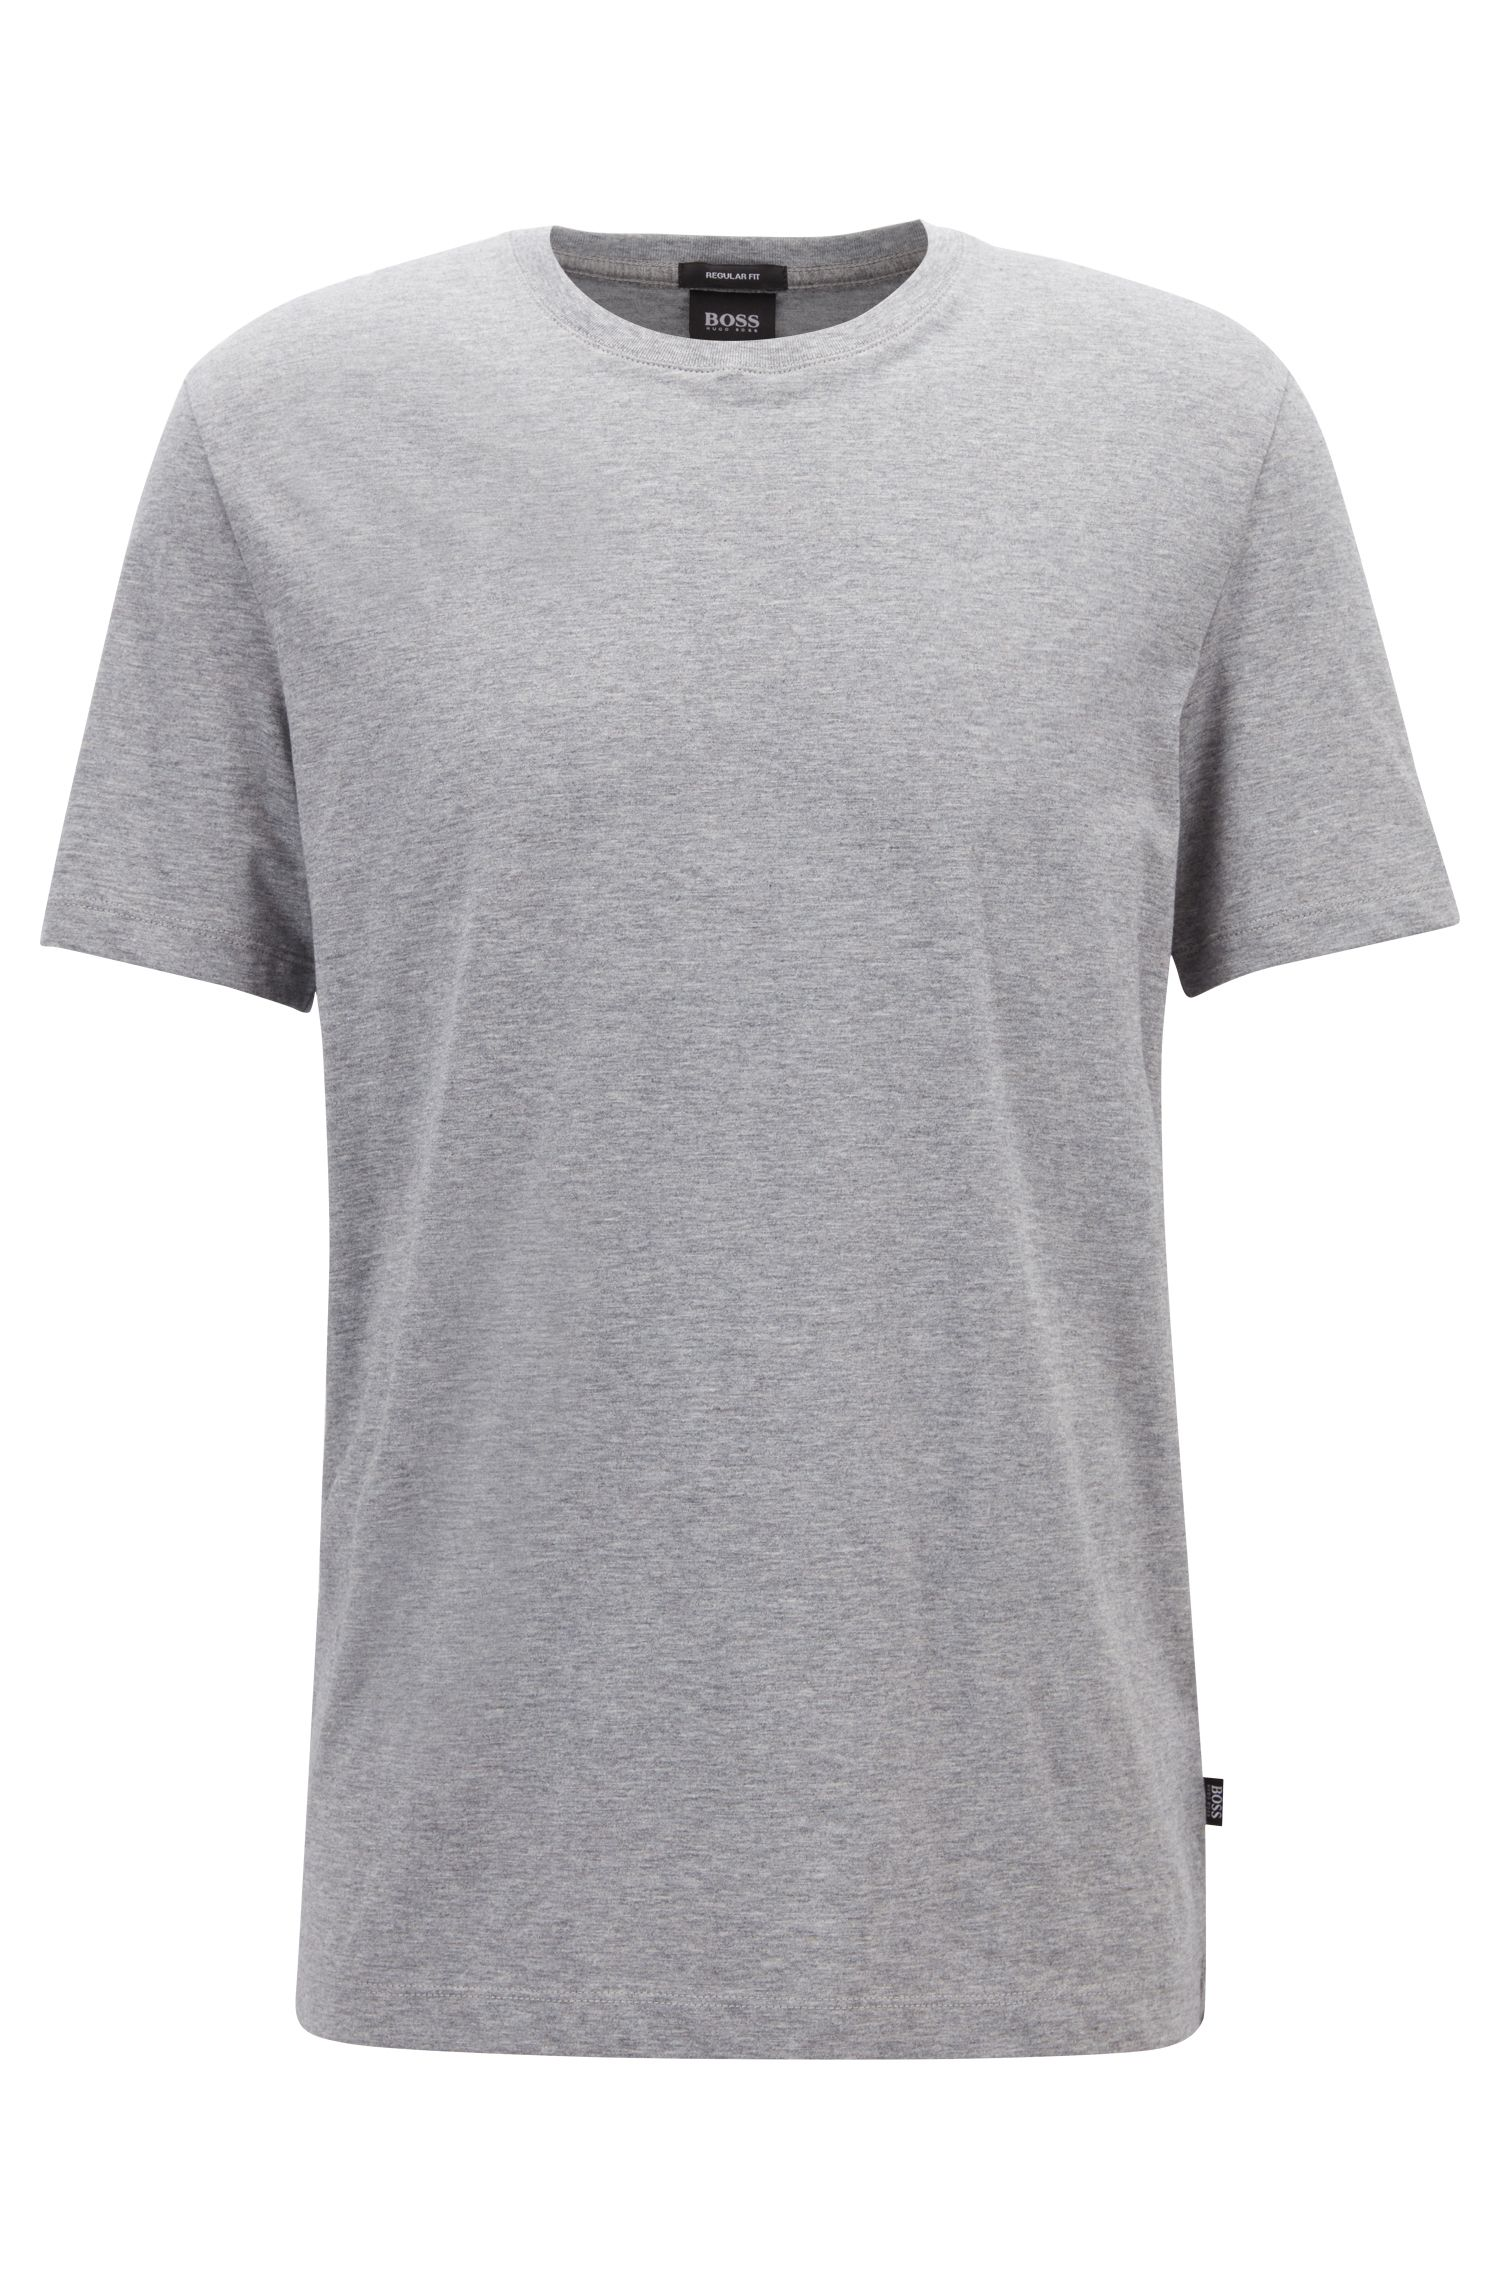 Regular-fit T-shirt in soft cotton, Silver